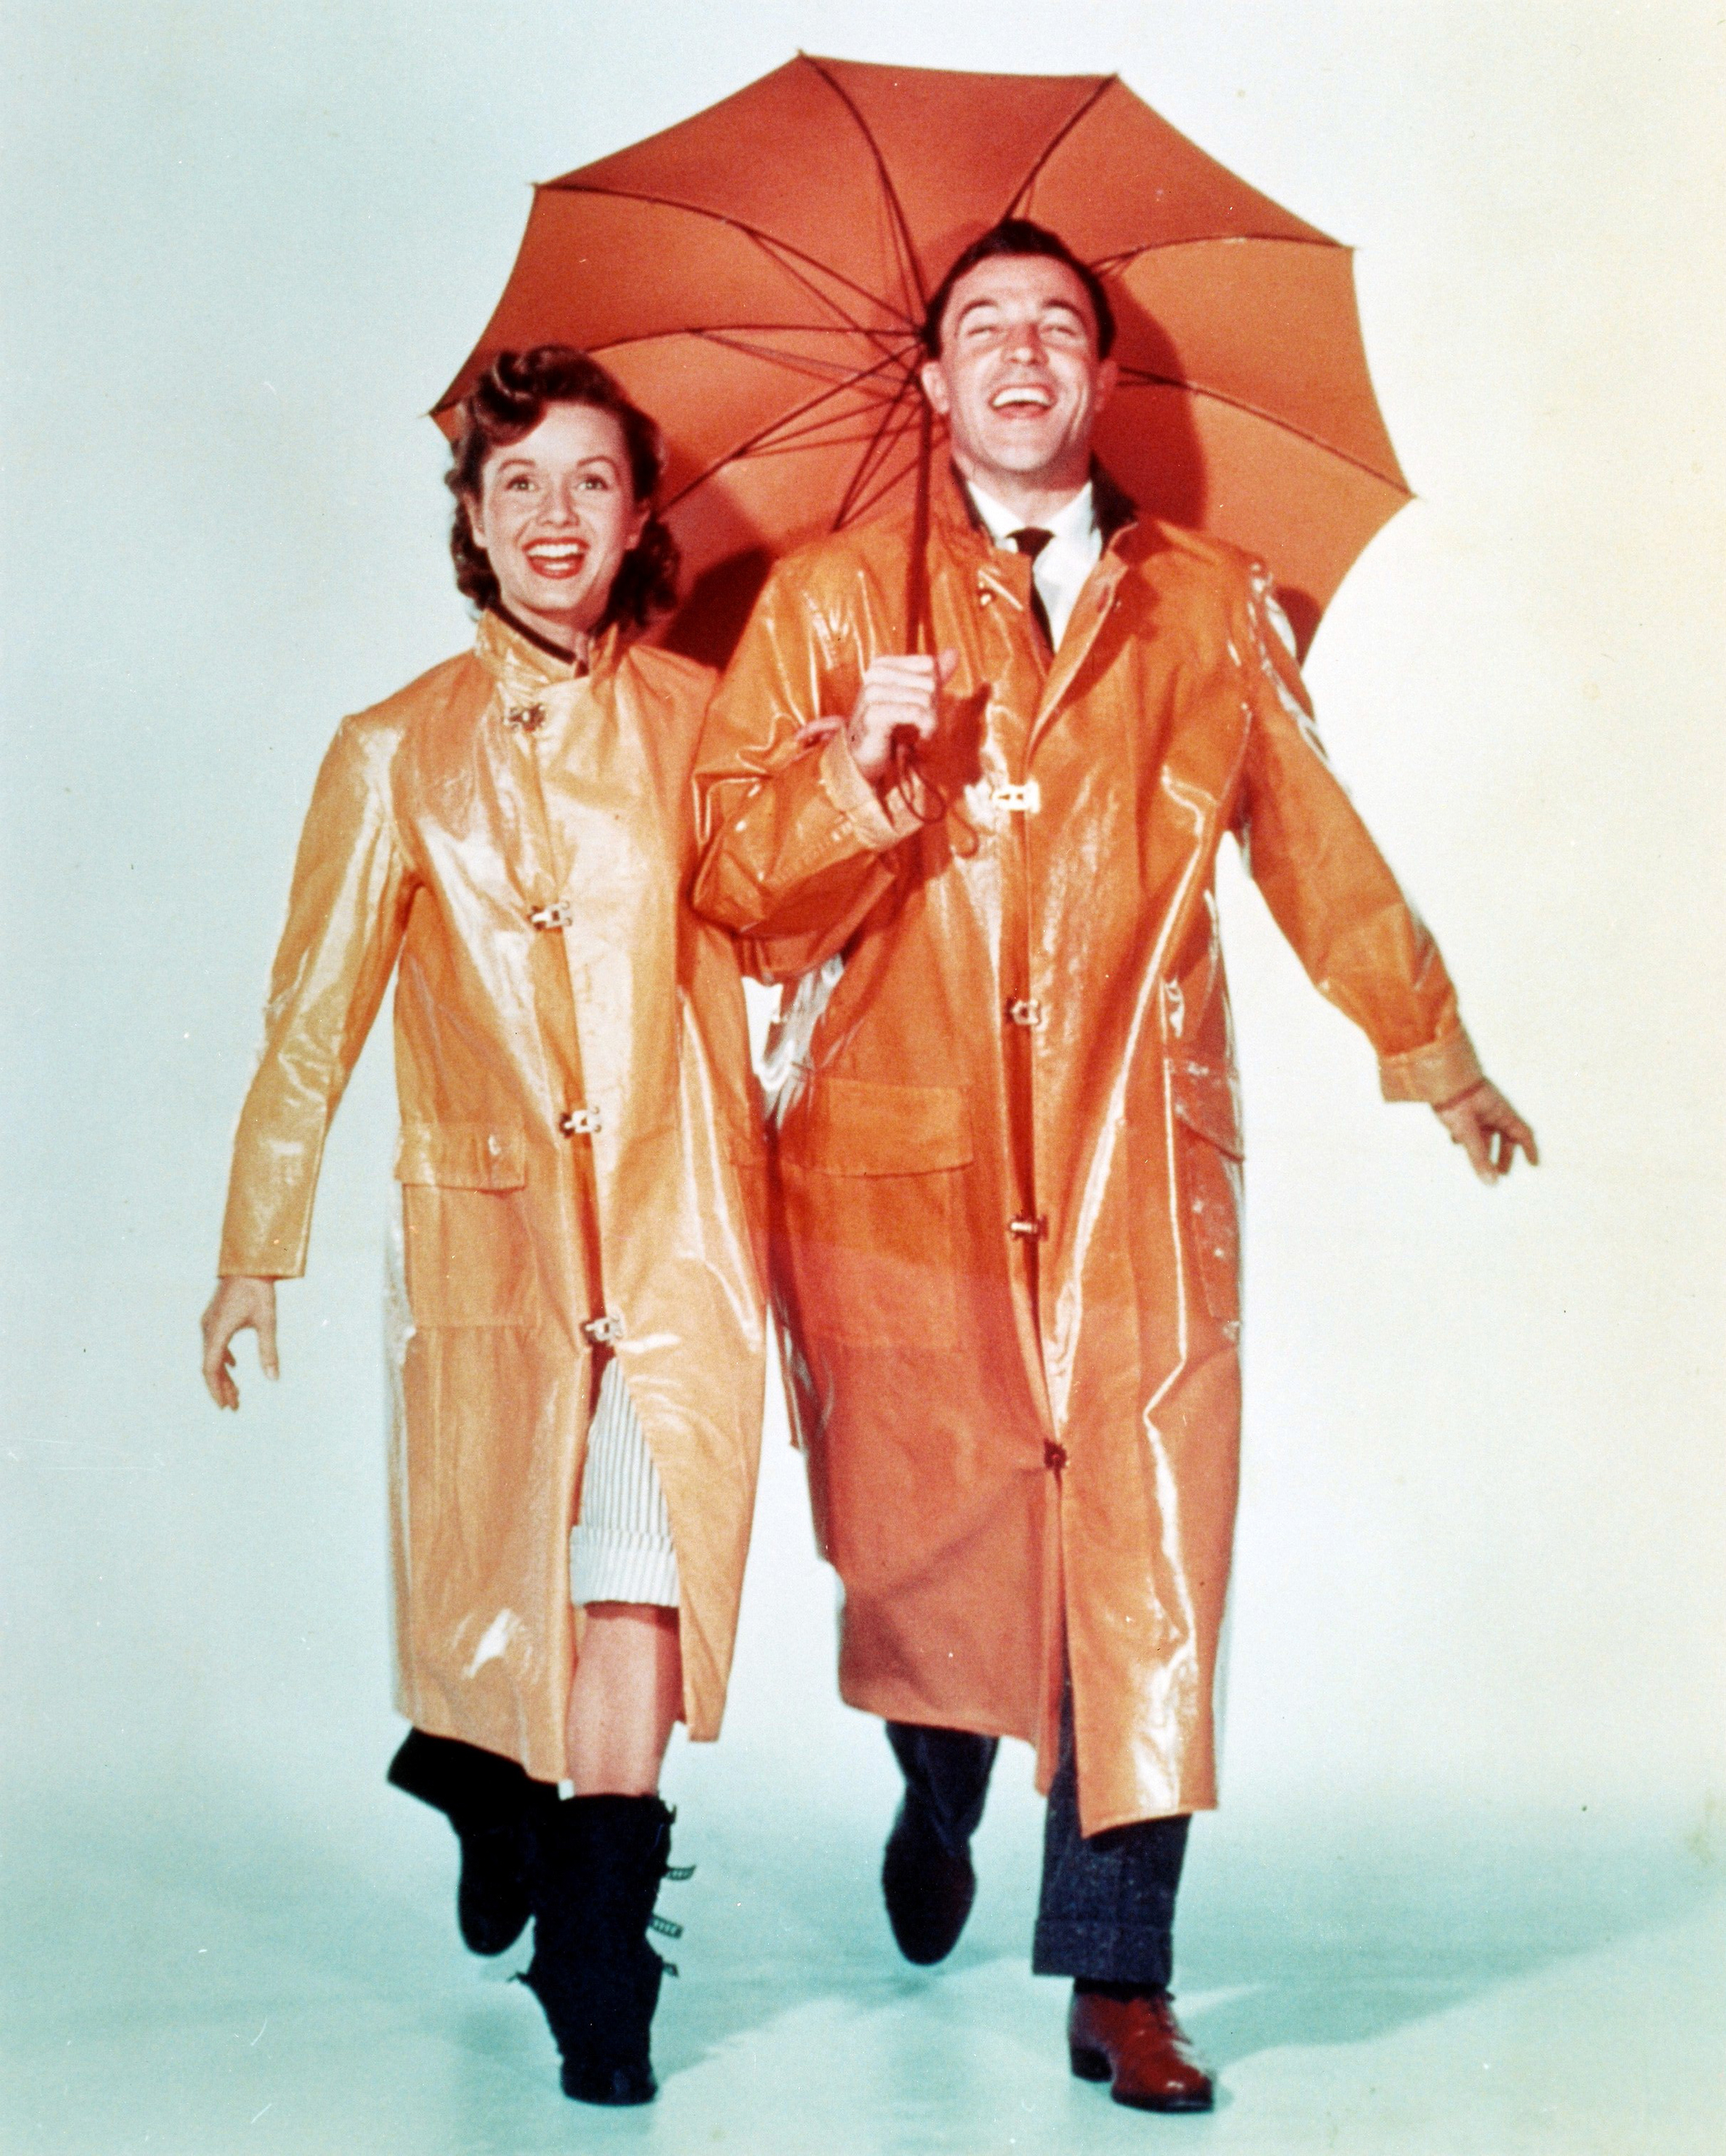 Debbie Reynolds as Kathy Seldon in 'Singin' in the Rain' with actor Gene Kelly as Don Lockwood, 1952